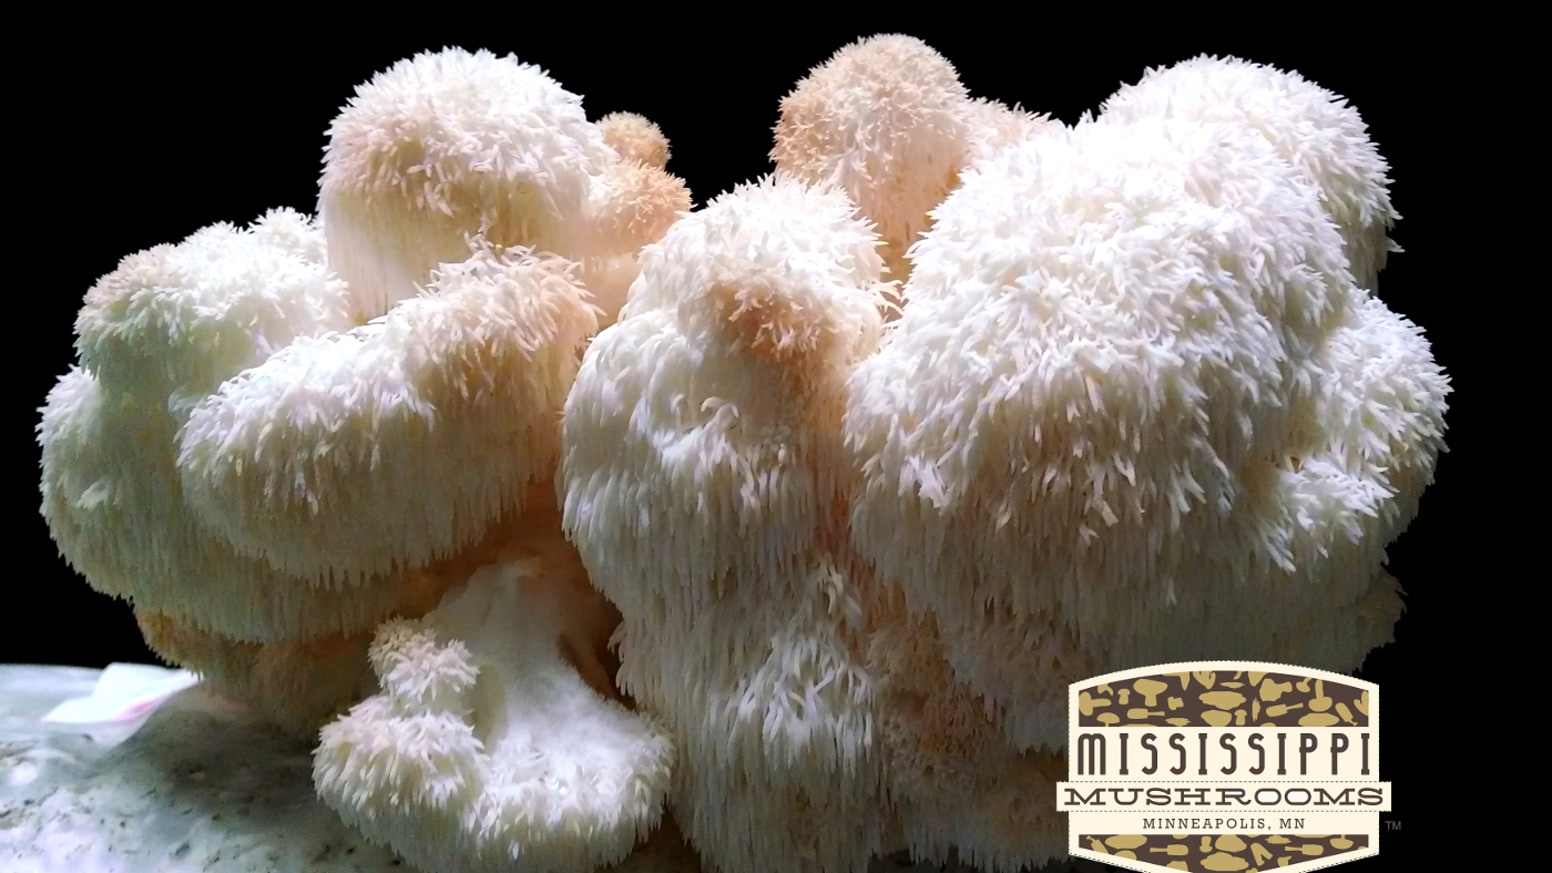 Producing Fresh Mushrooms and Compost Year Round! by